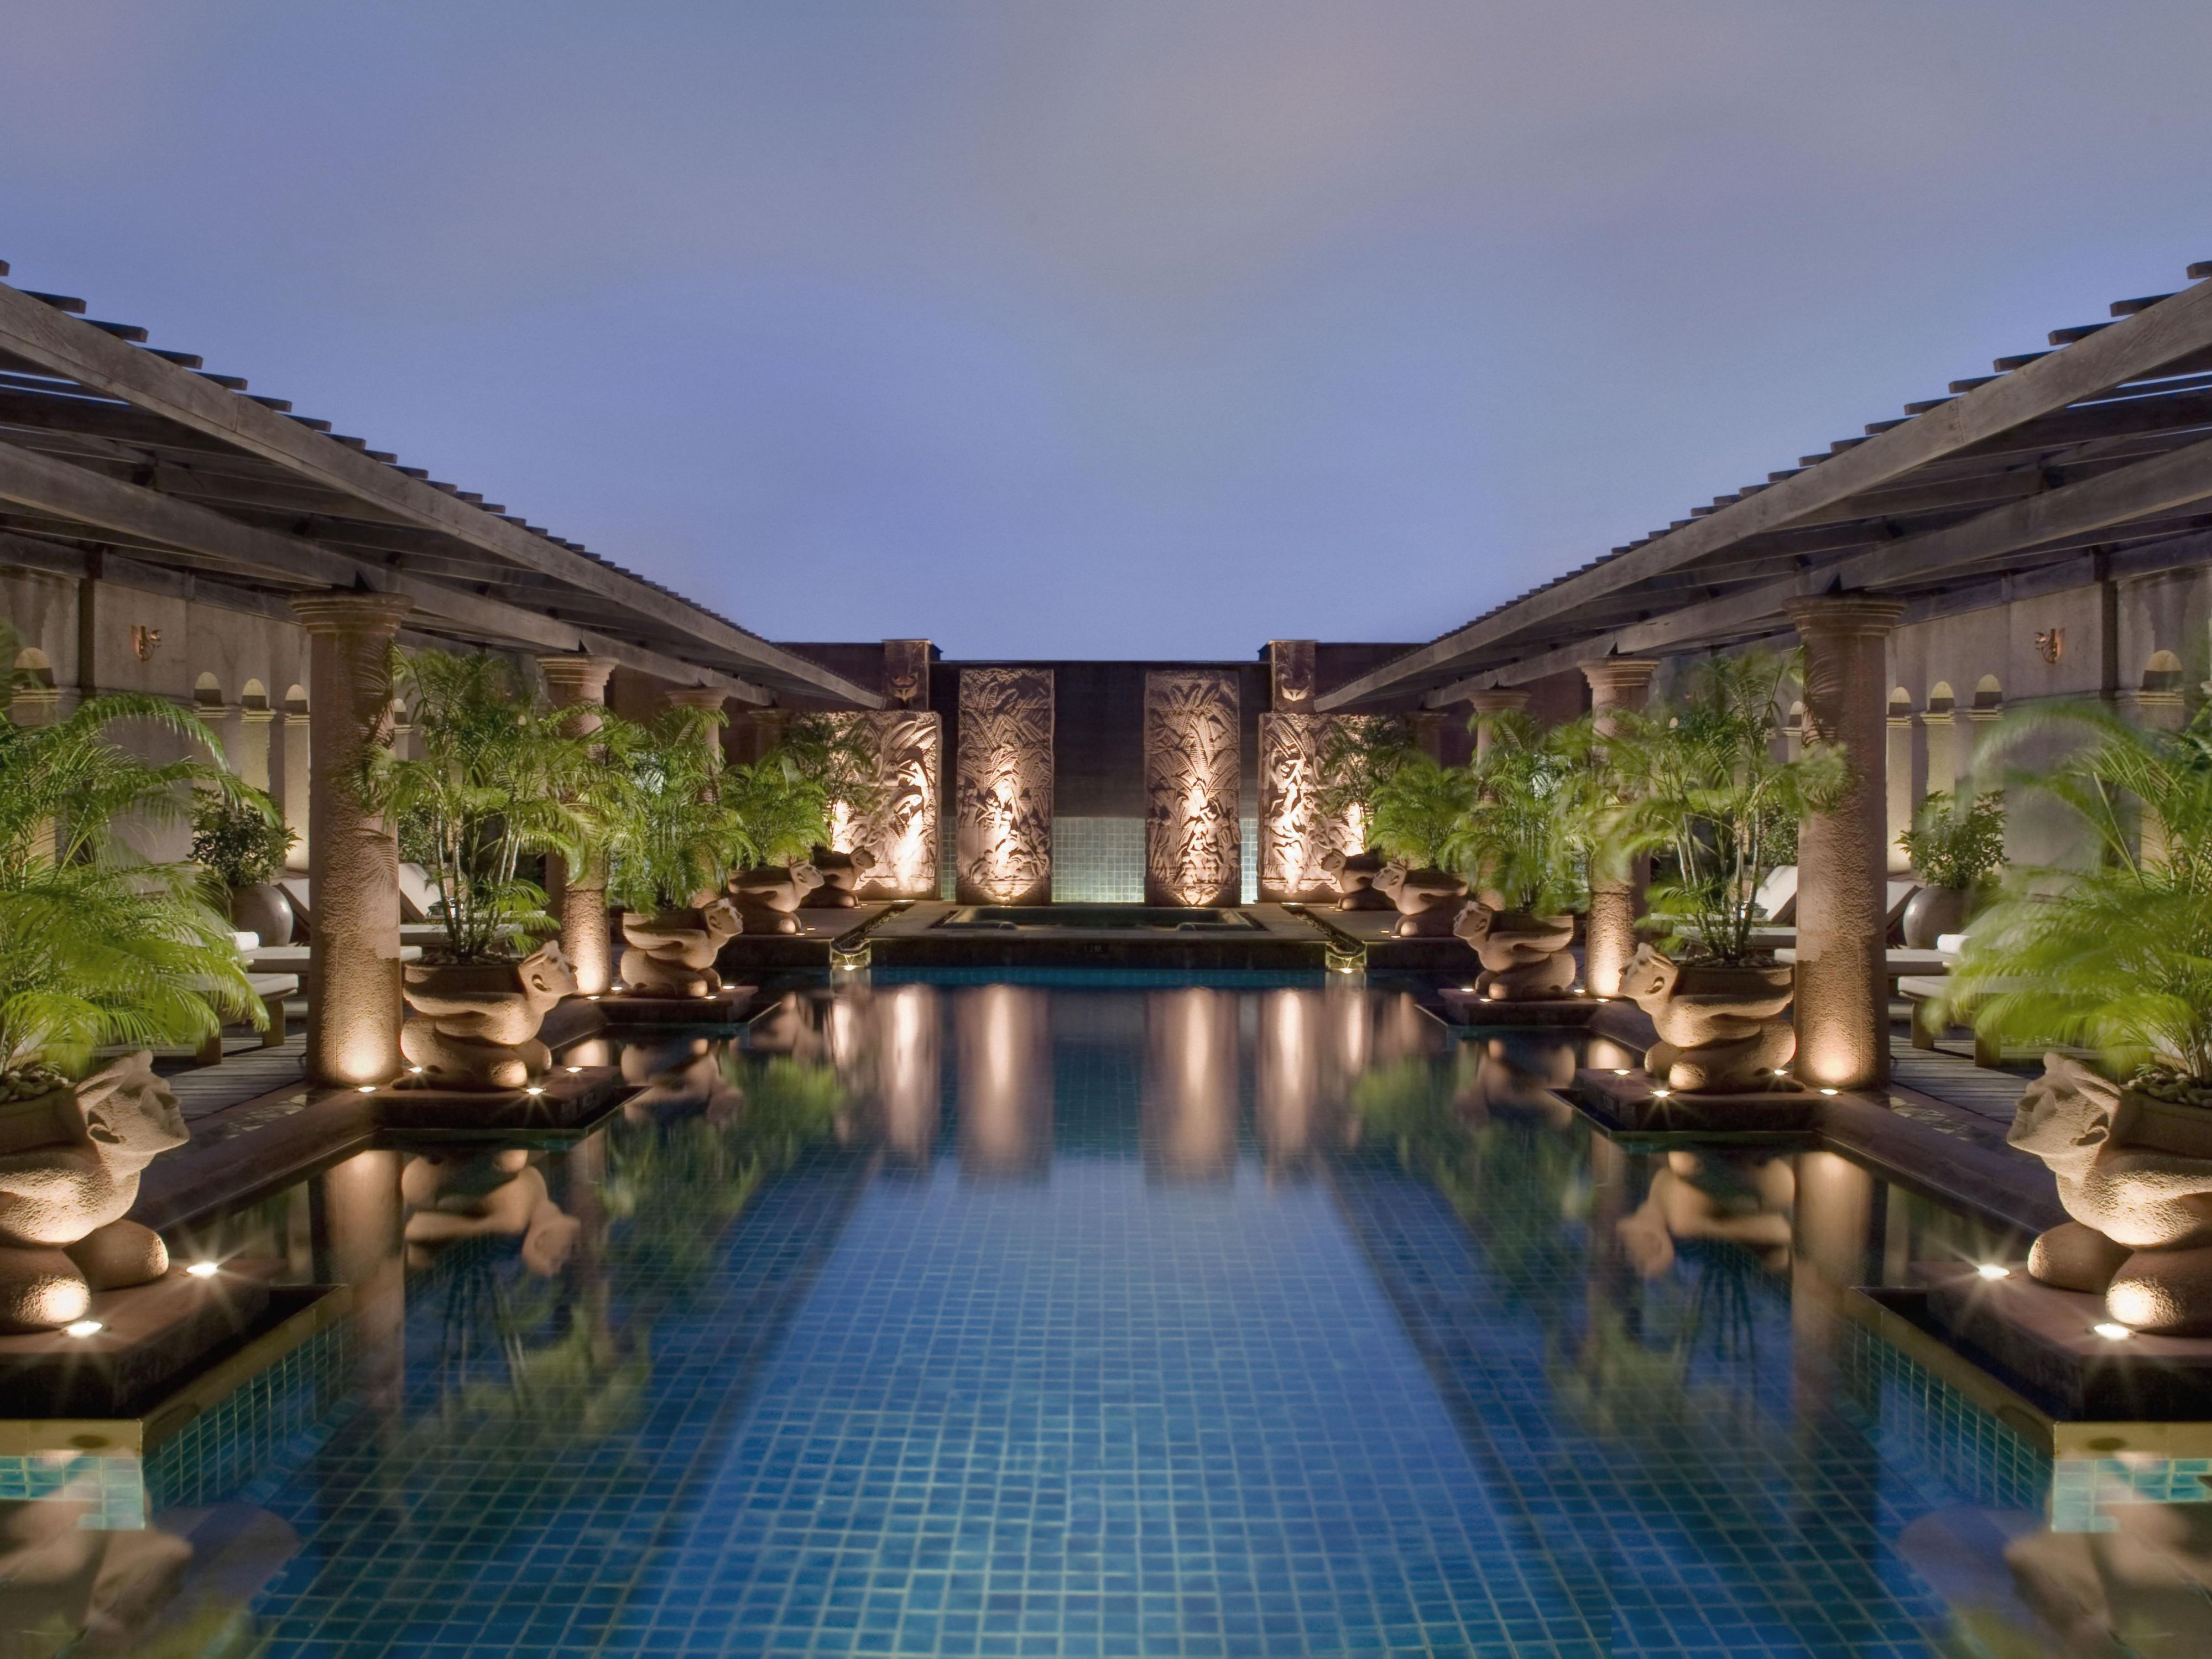 Rooms: 2018 World's Best Hotels